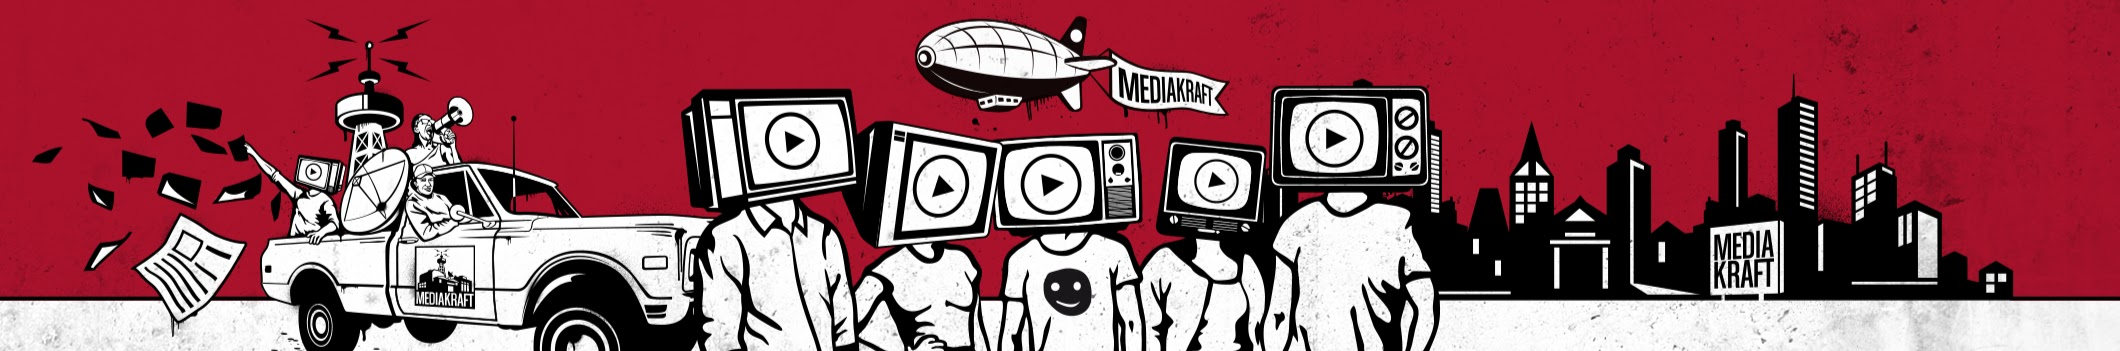 Mediakraft TV